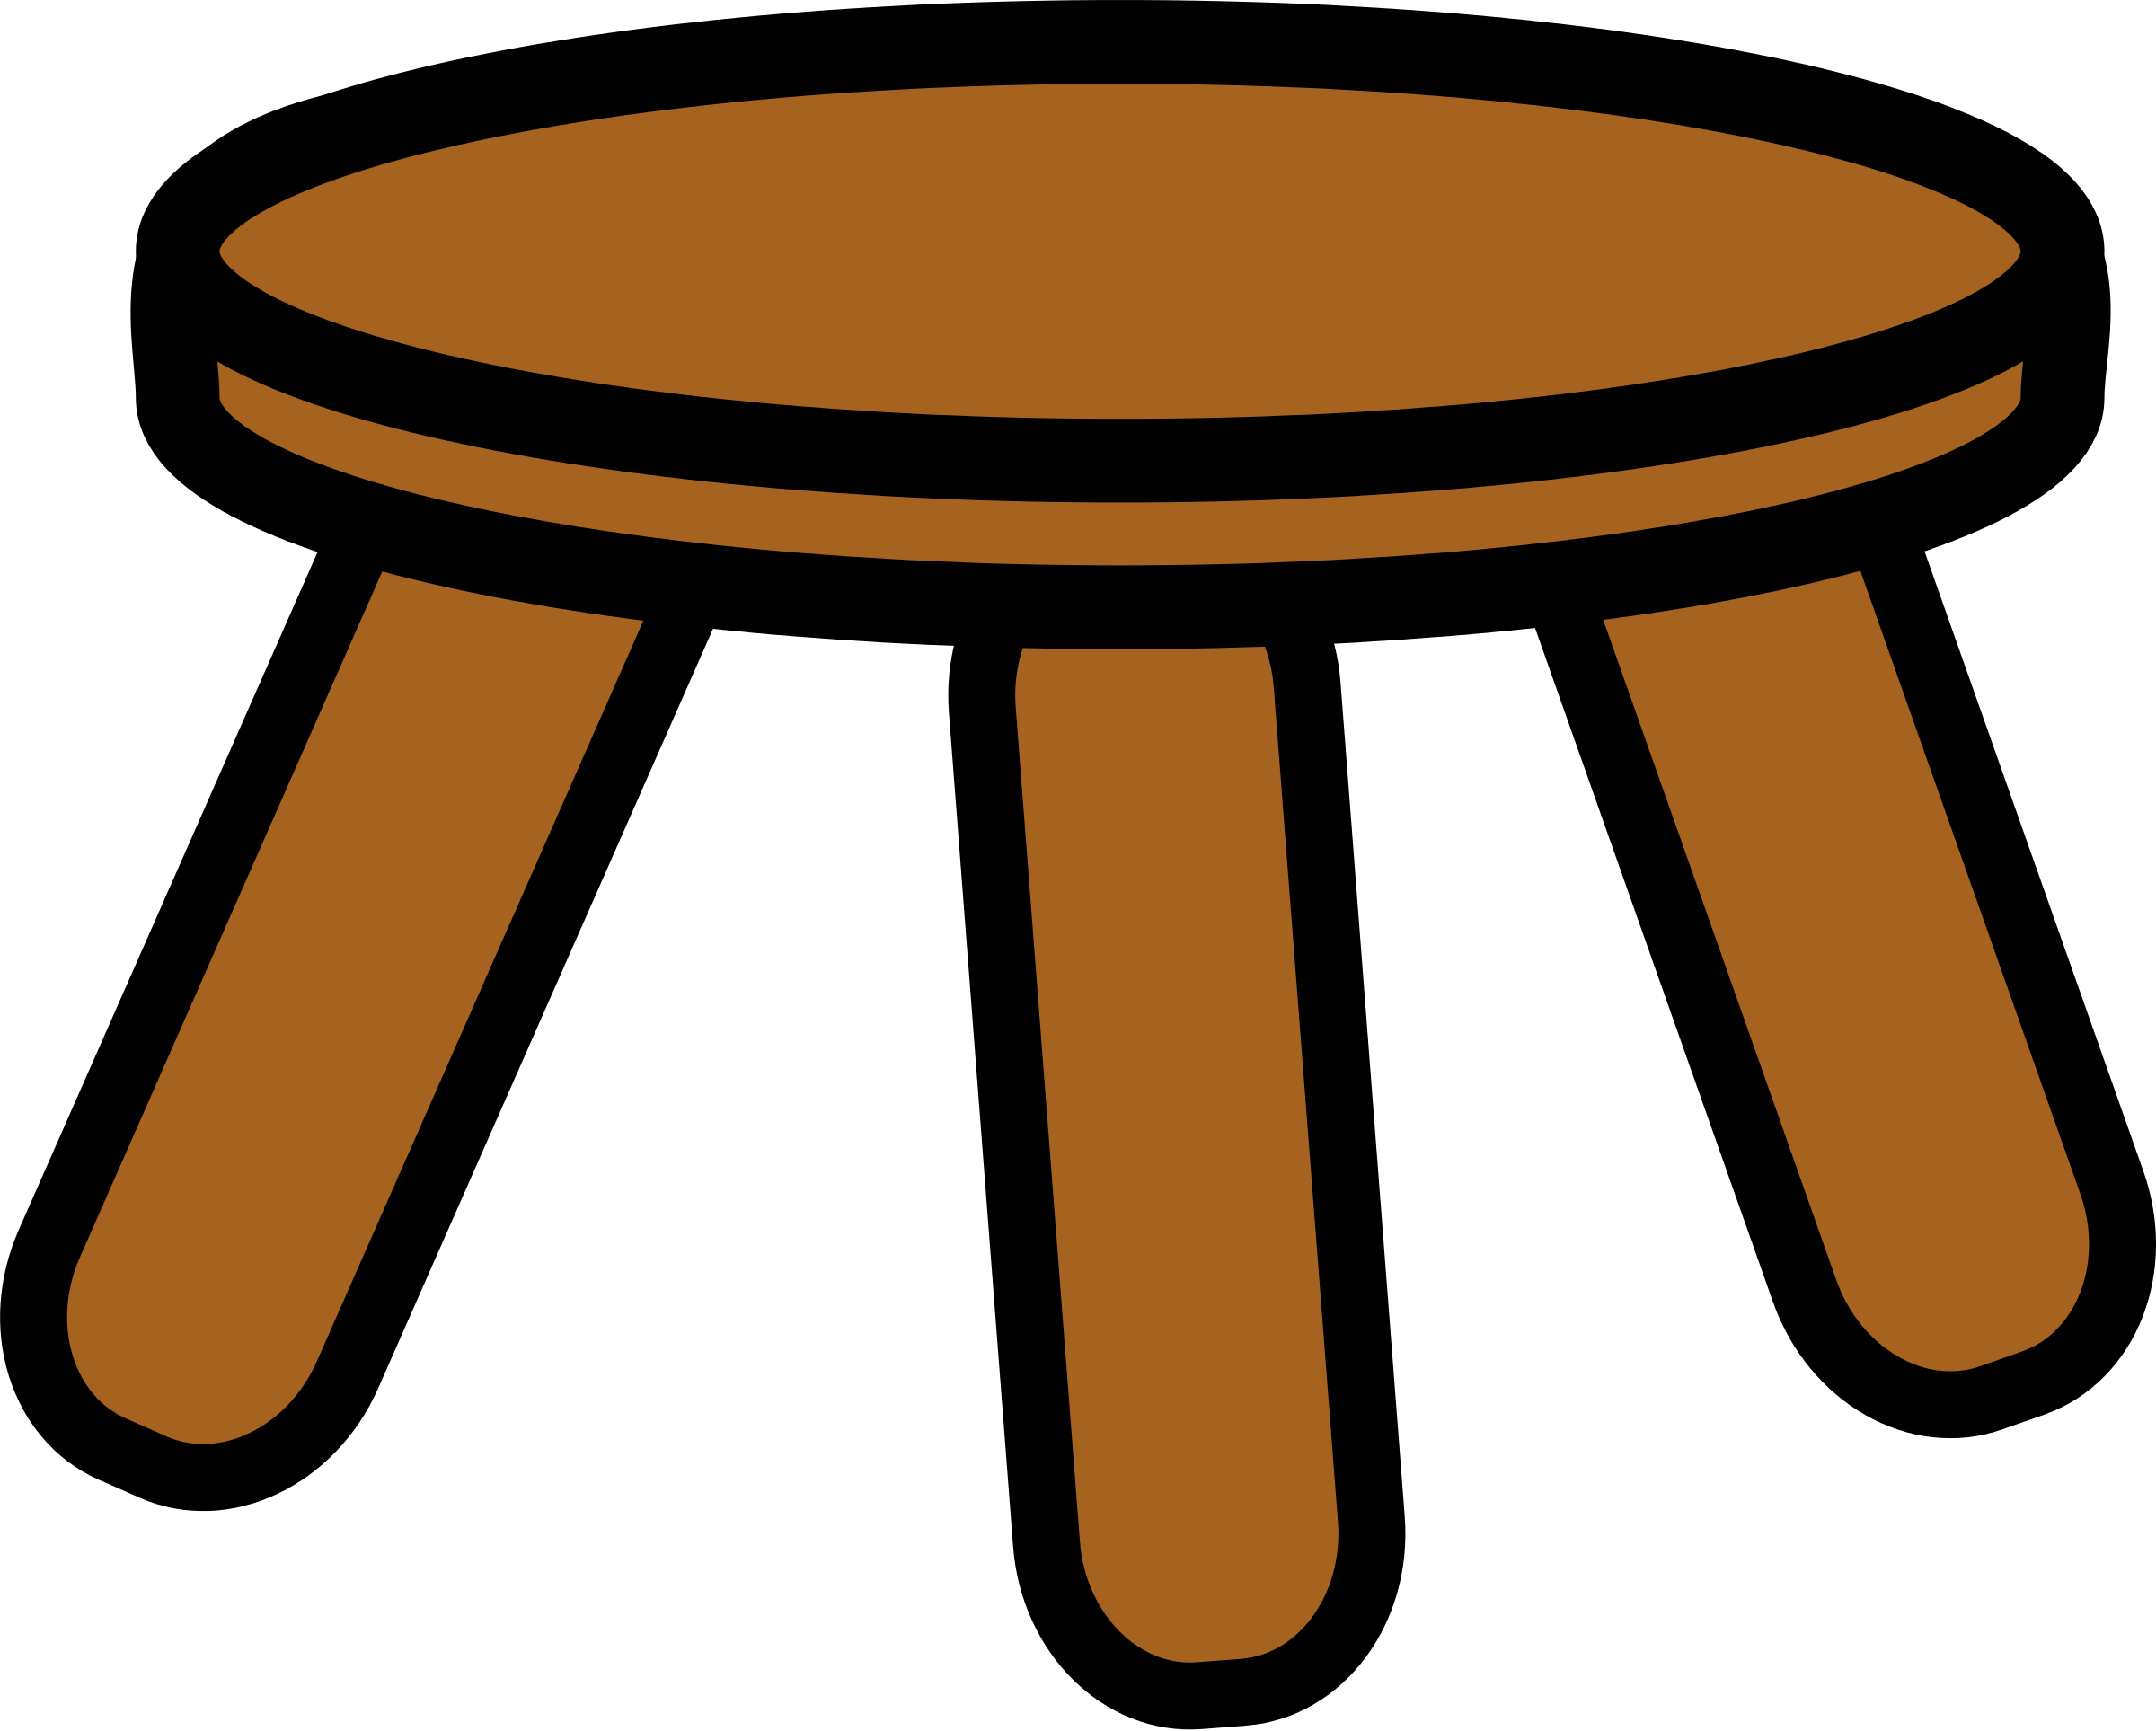 Clipart Stool 20 Free Cliparts Download Images On